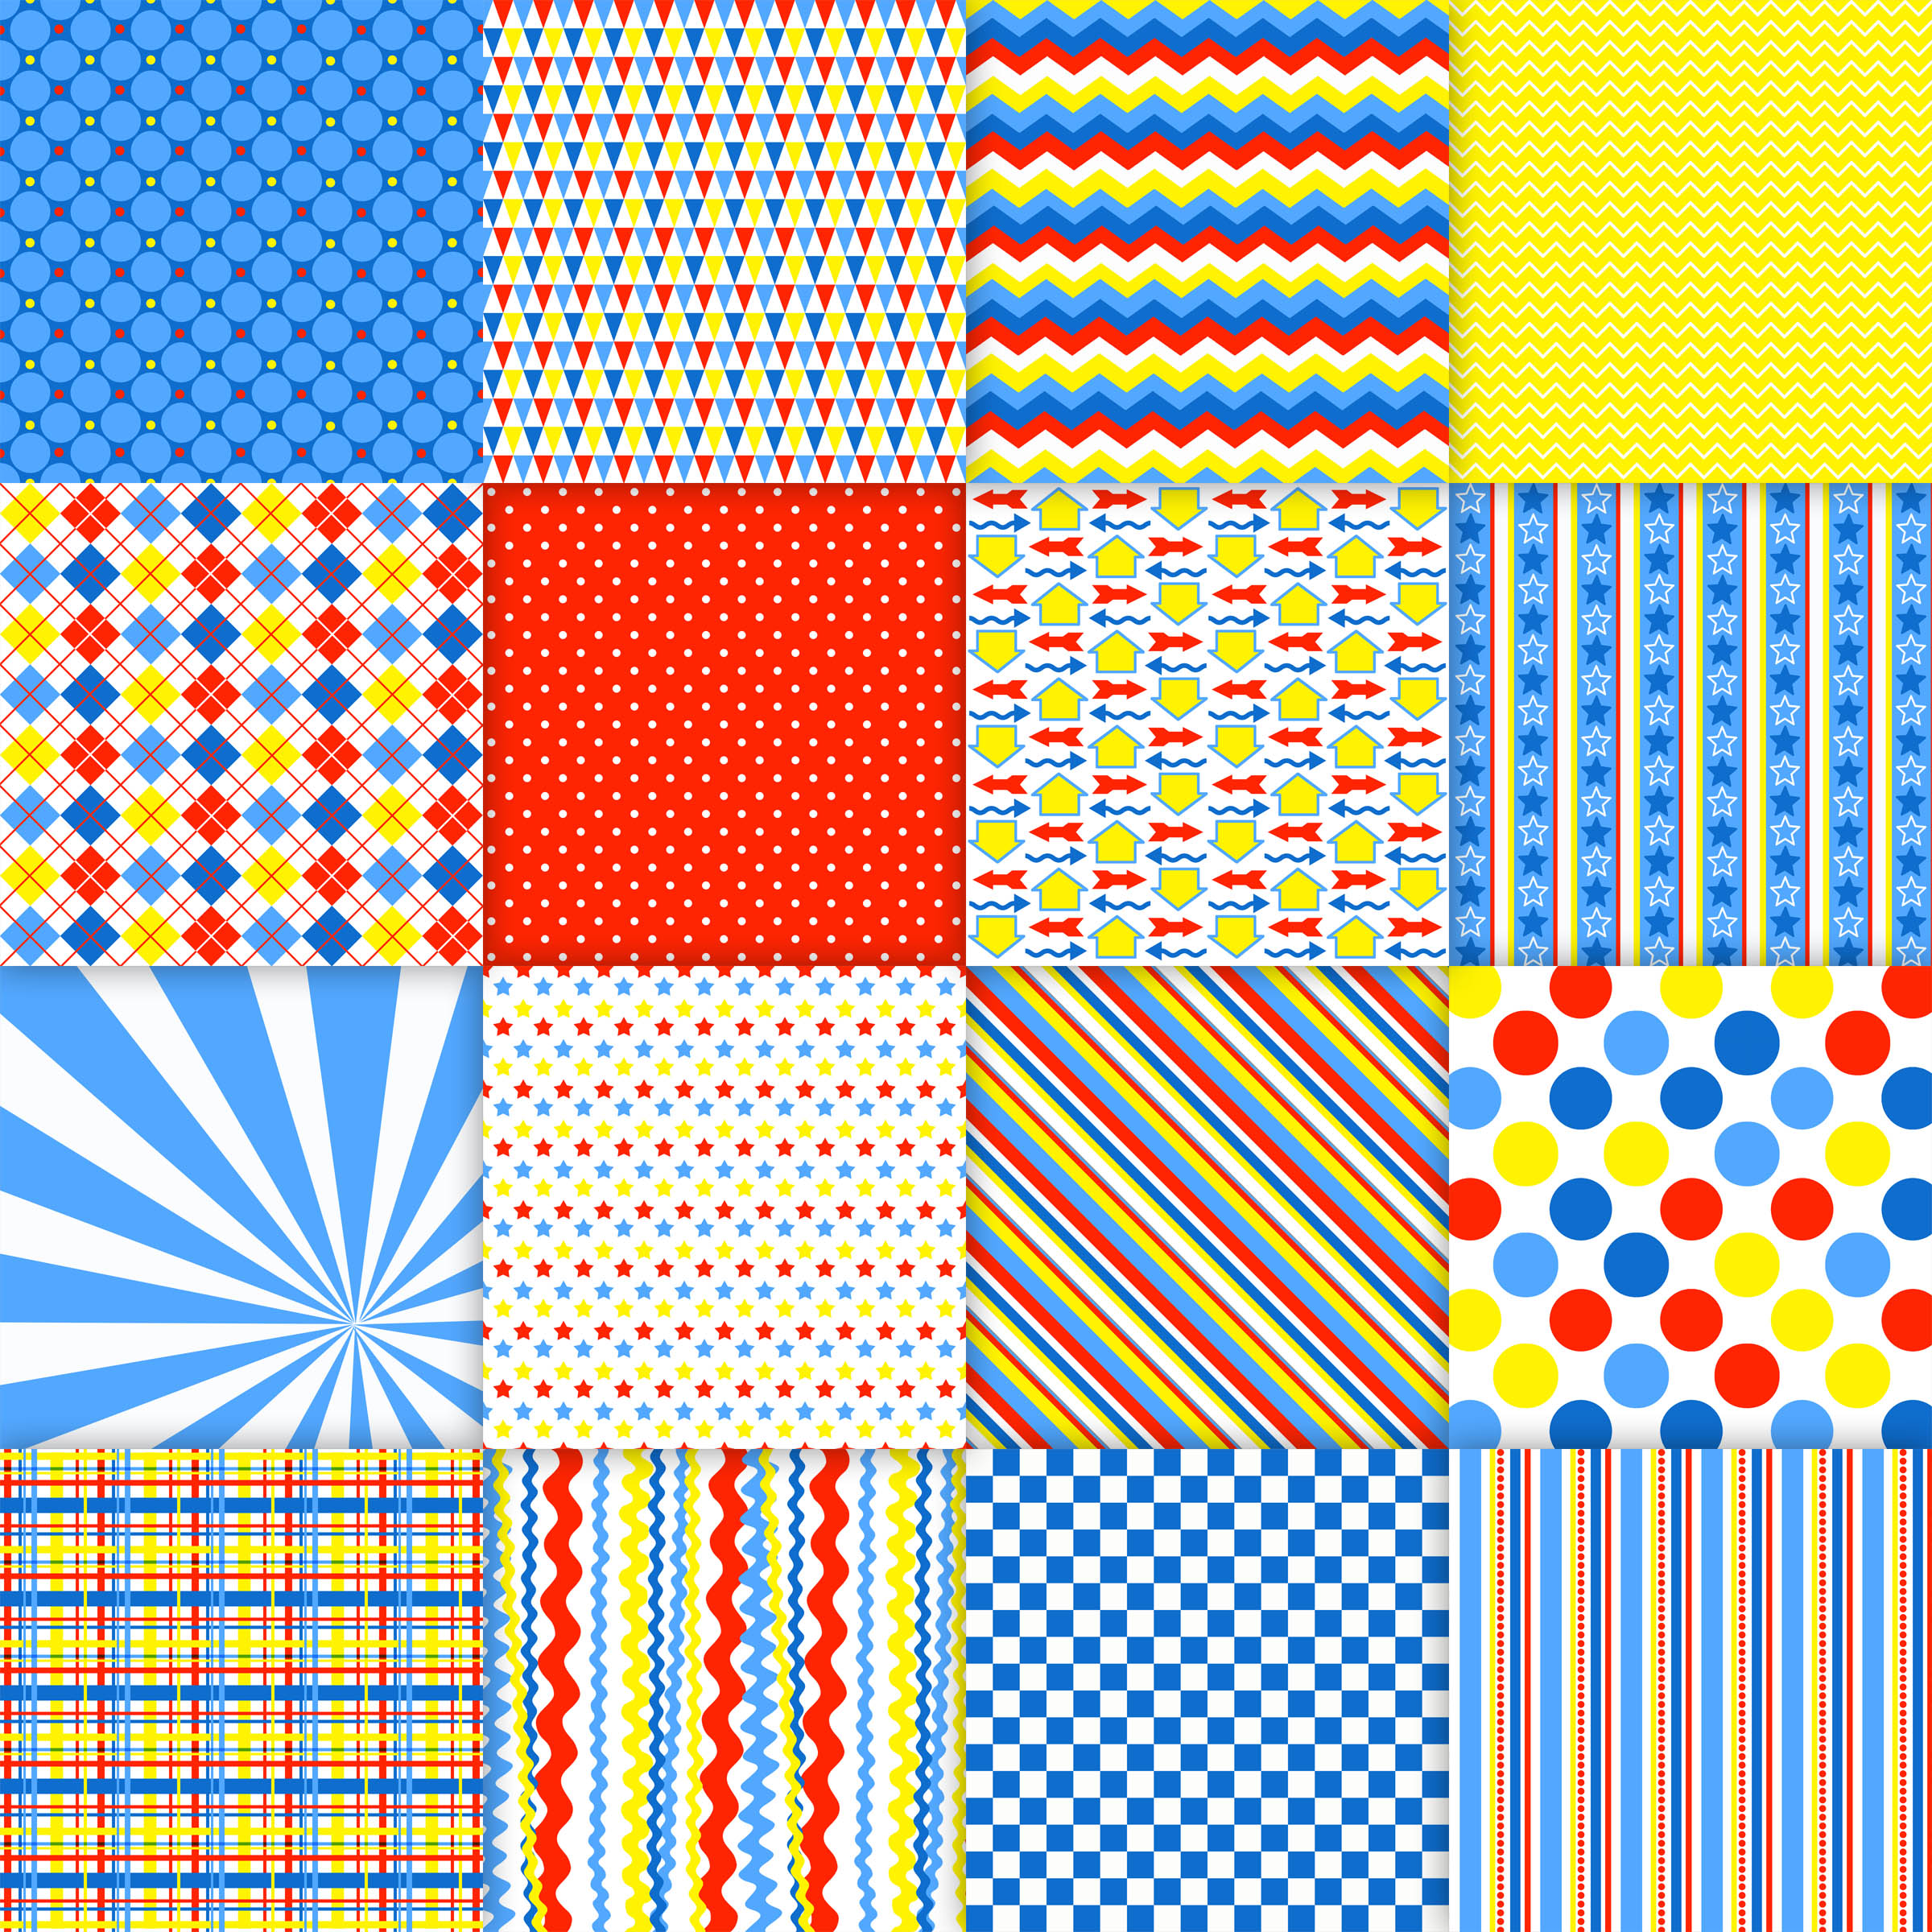 Primary Color Fun Digital Paper Graphic Backgrounds By oldmarketdesigns - Image 2